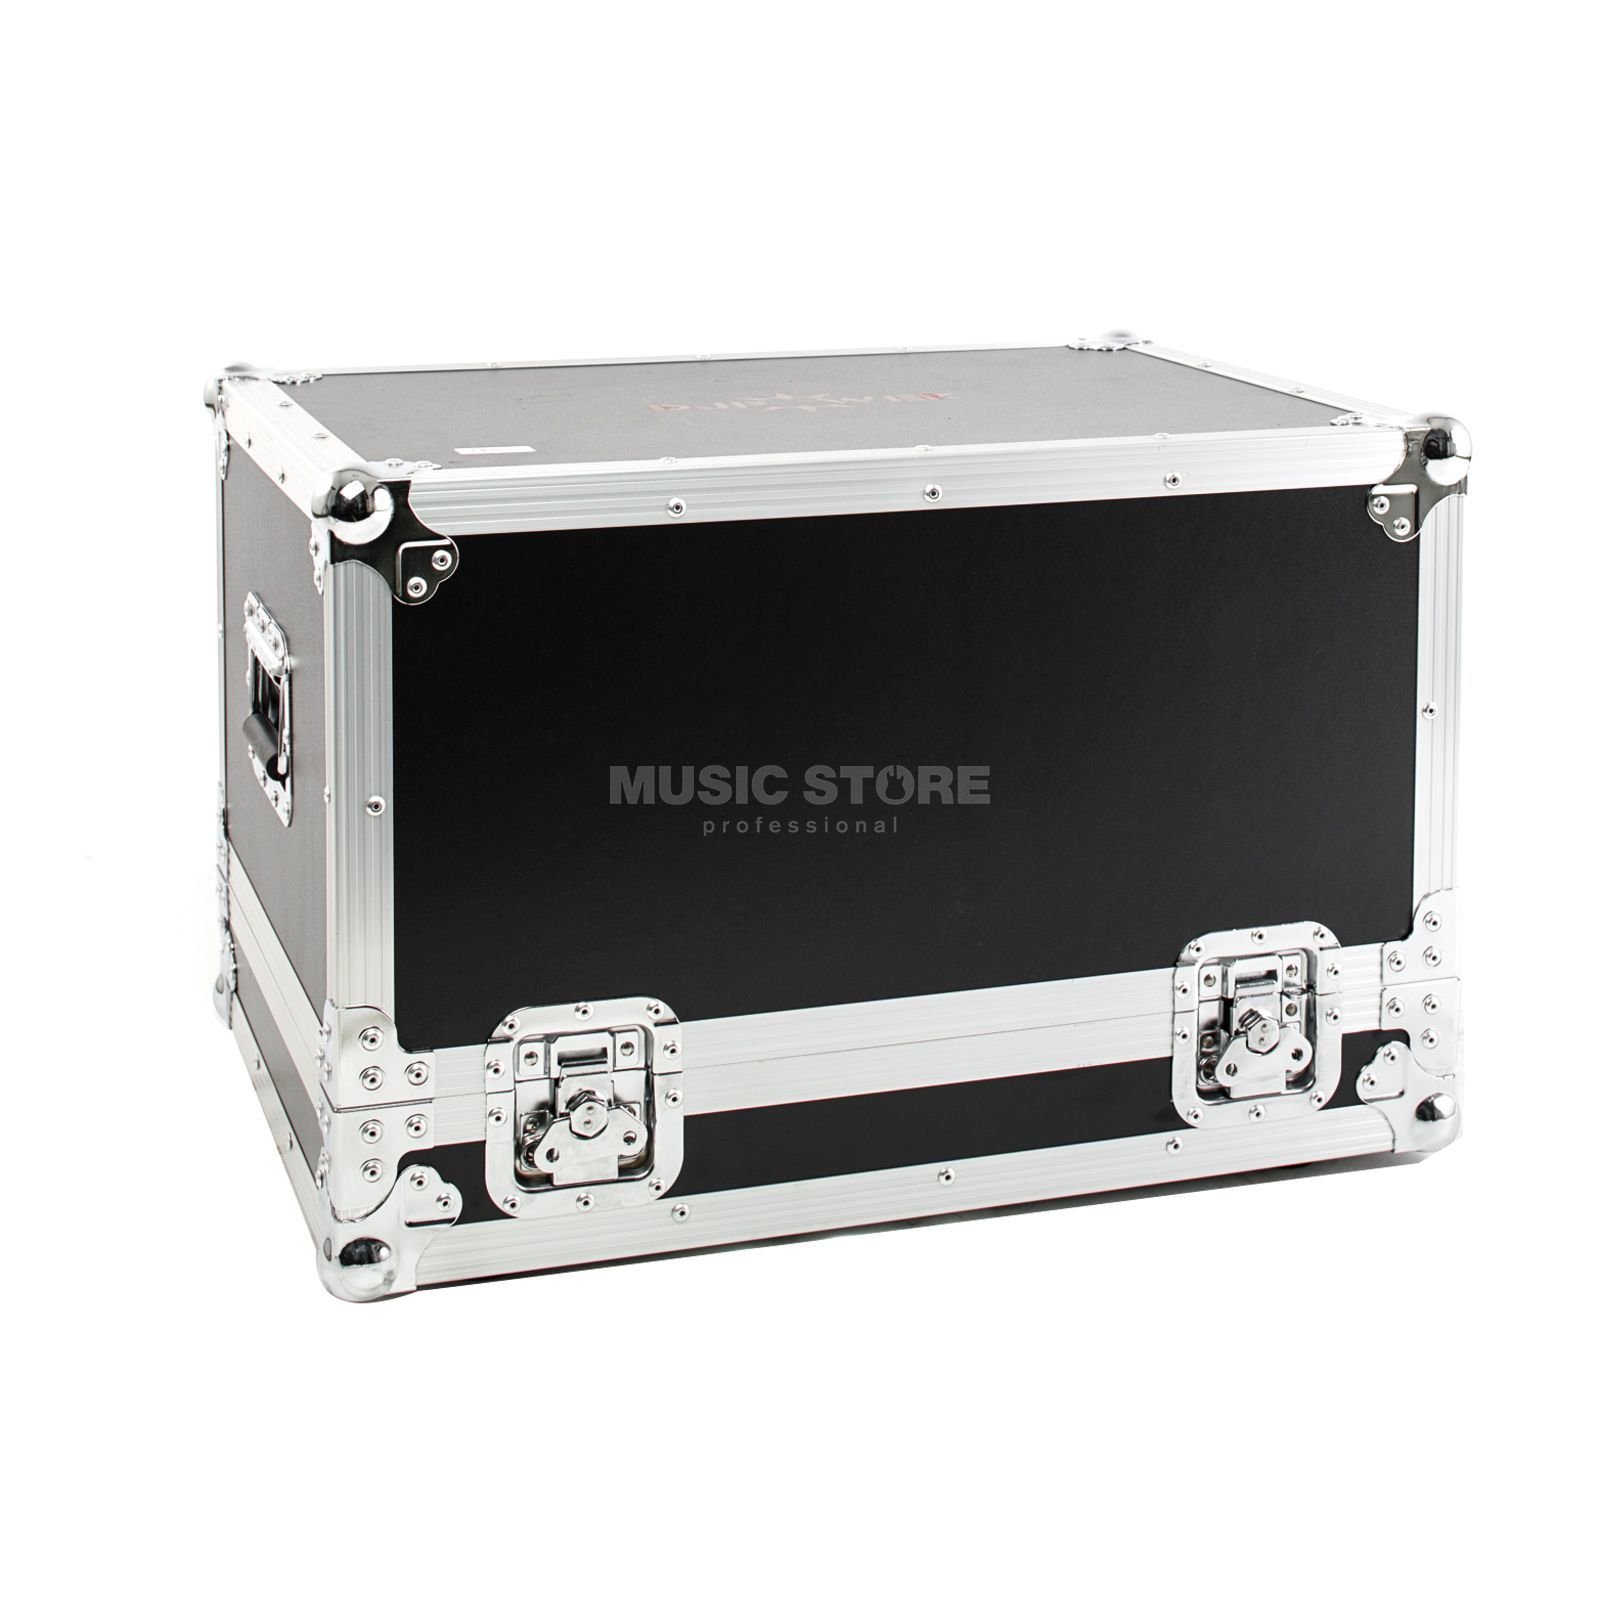 DJ Power Case - Nebelmaschine DSK-3000  Produktbild